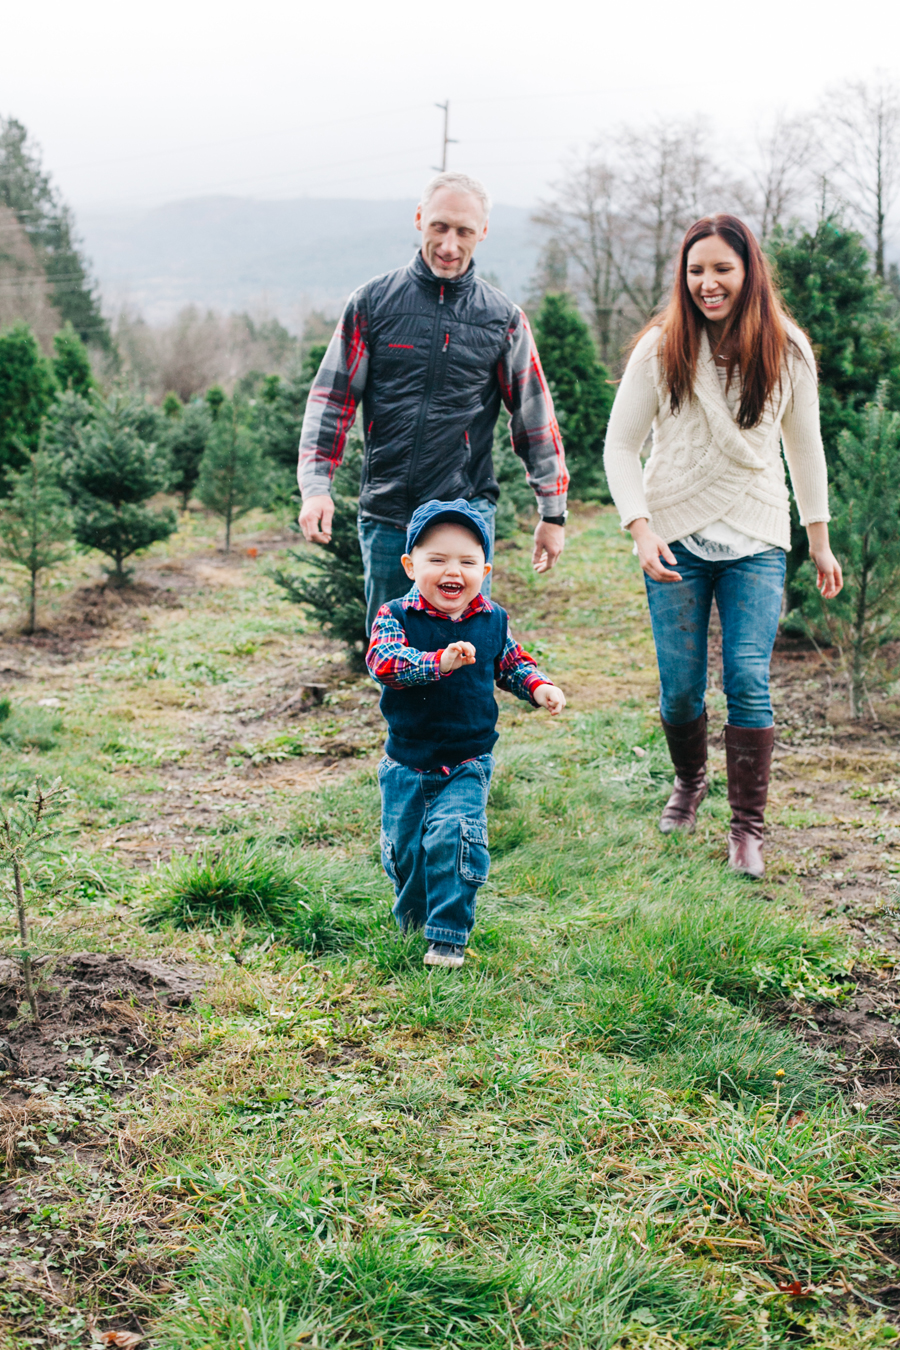 025-fullner-family-christmas-tree-farm-everson-washington-bellingham-family-photographer-katheryn-moran-photography.jpg